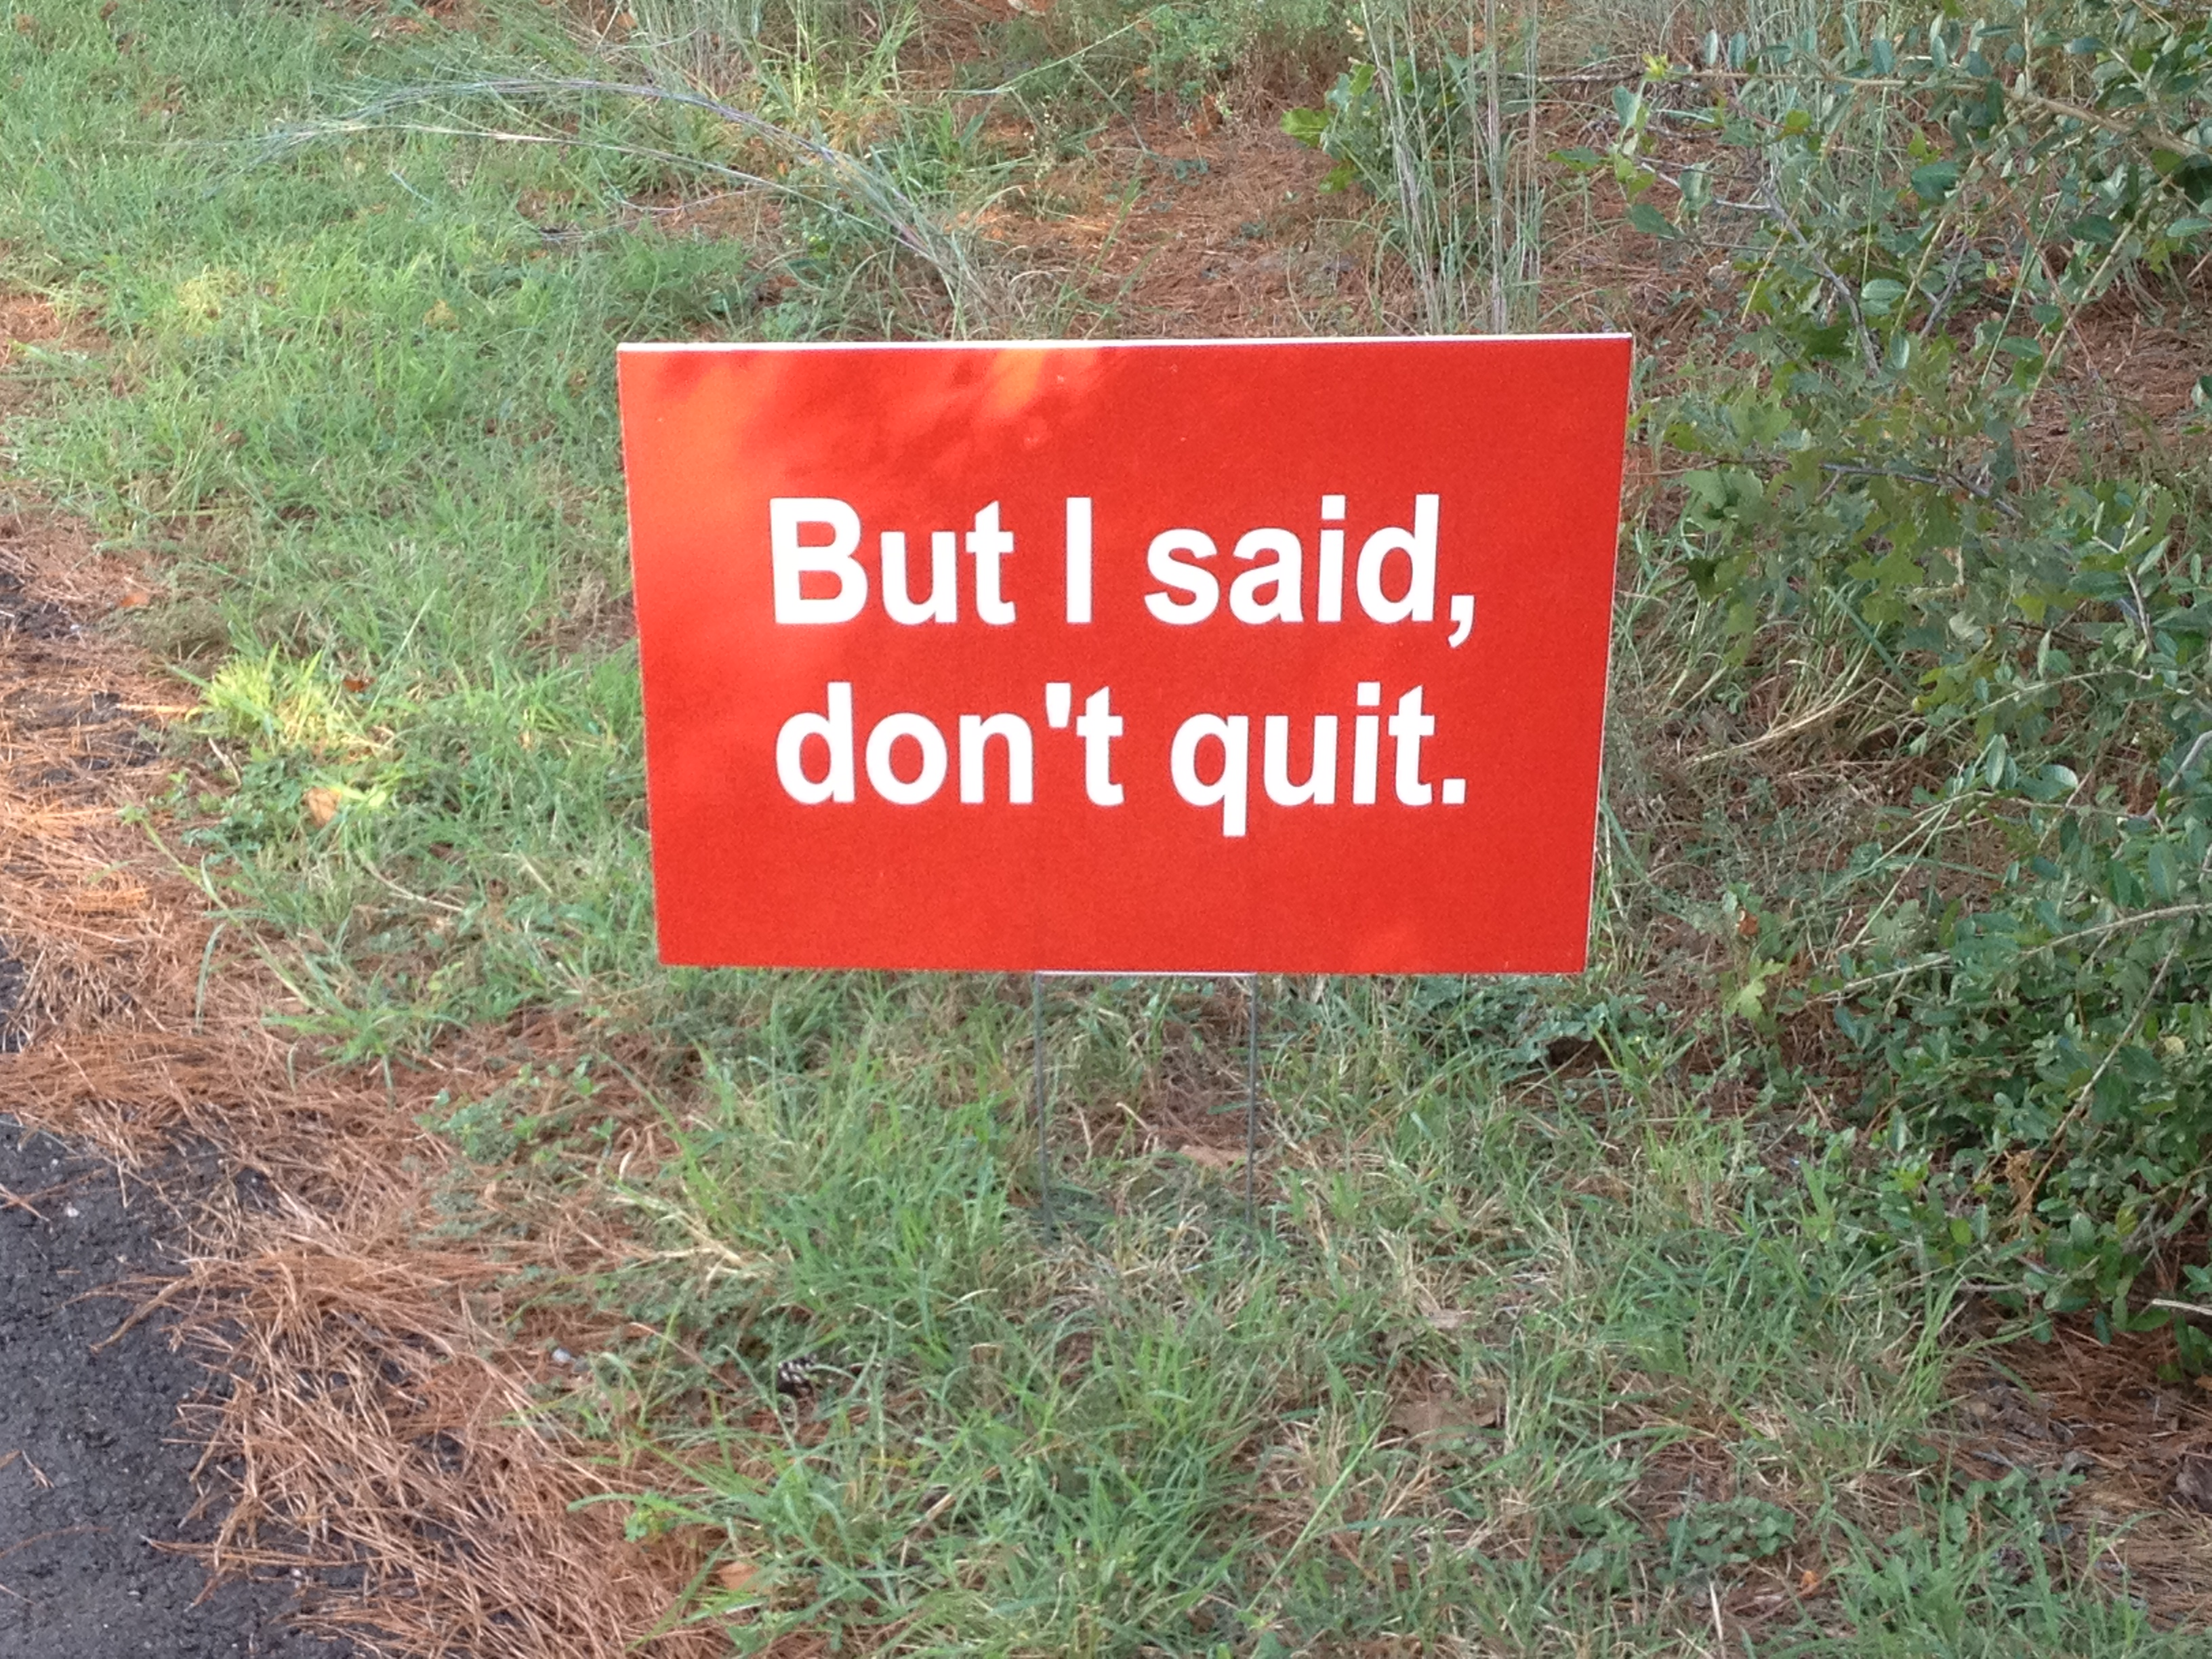 """don't quit"" by Sarah Page is licensed under CC by 2.0"